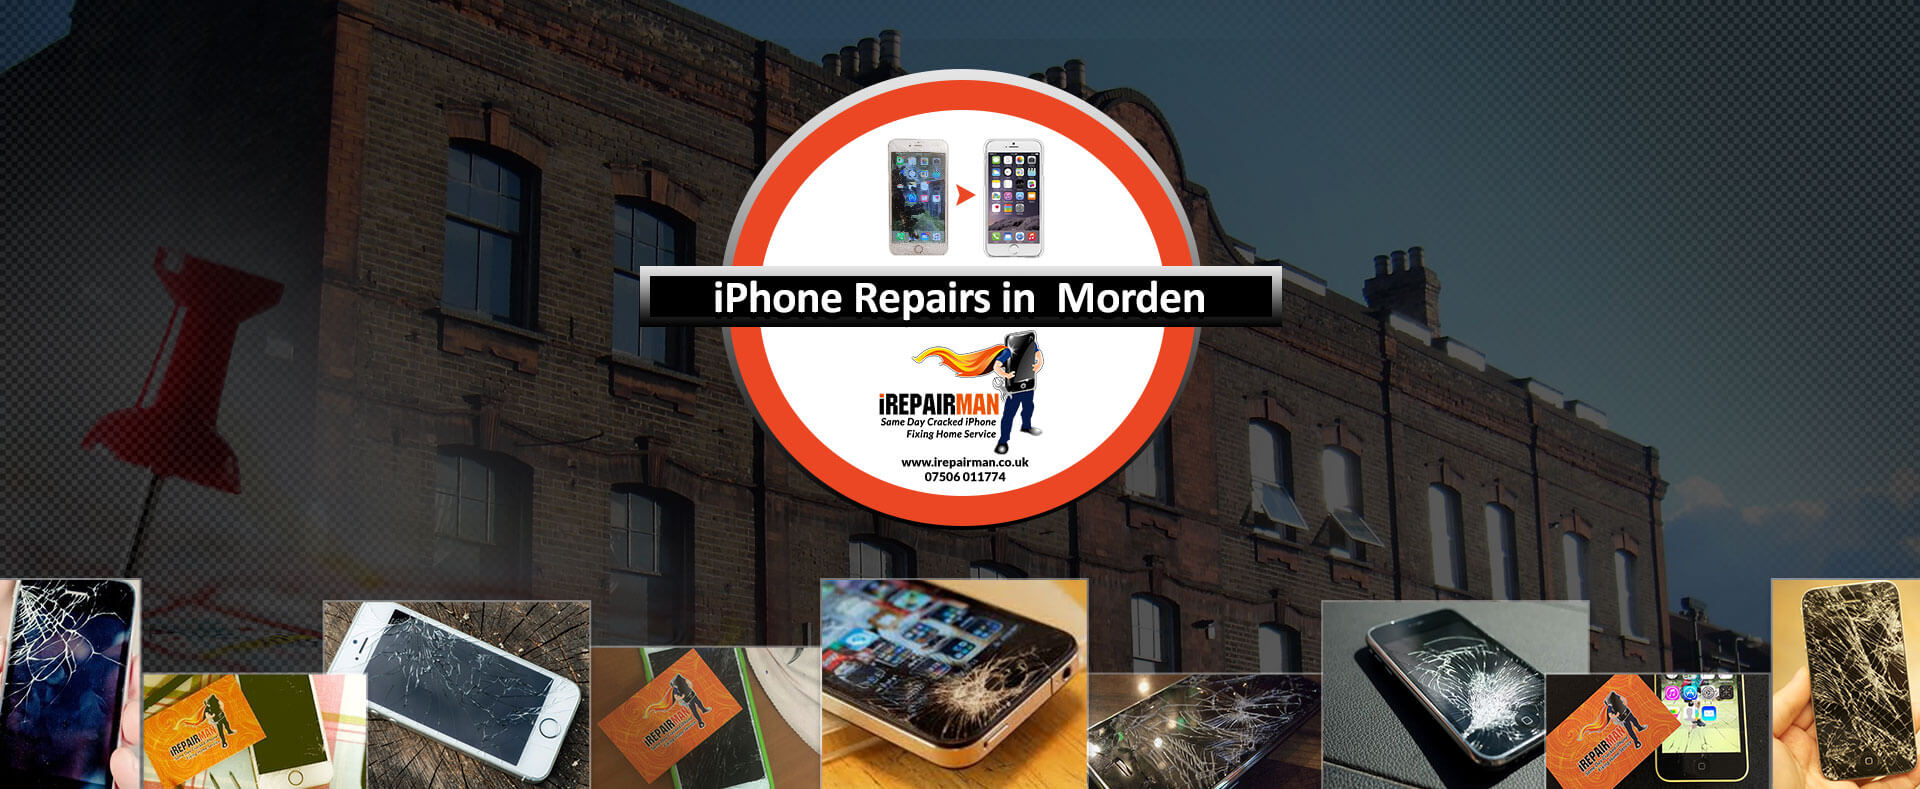 iPhone Repairs in Morden